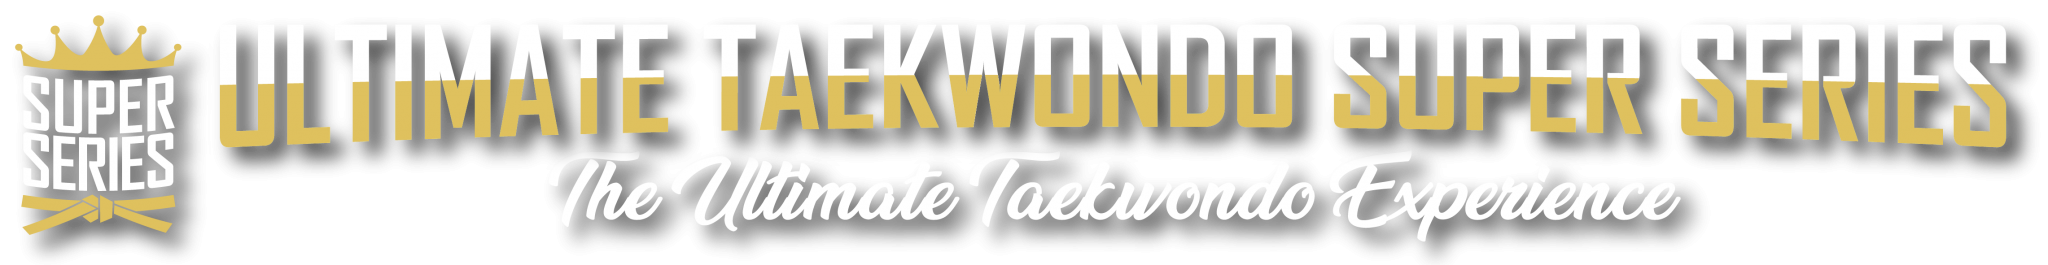 Ultimate Taekwondo Super Series